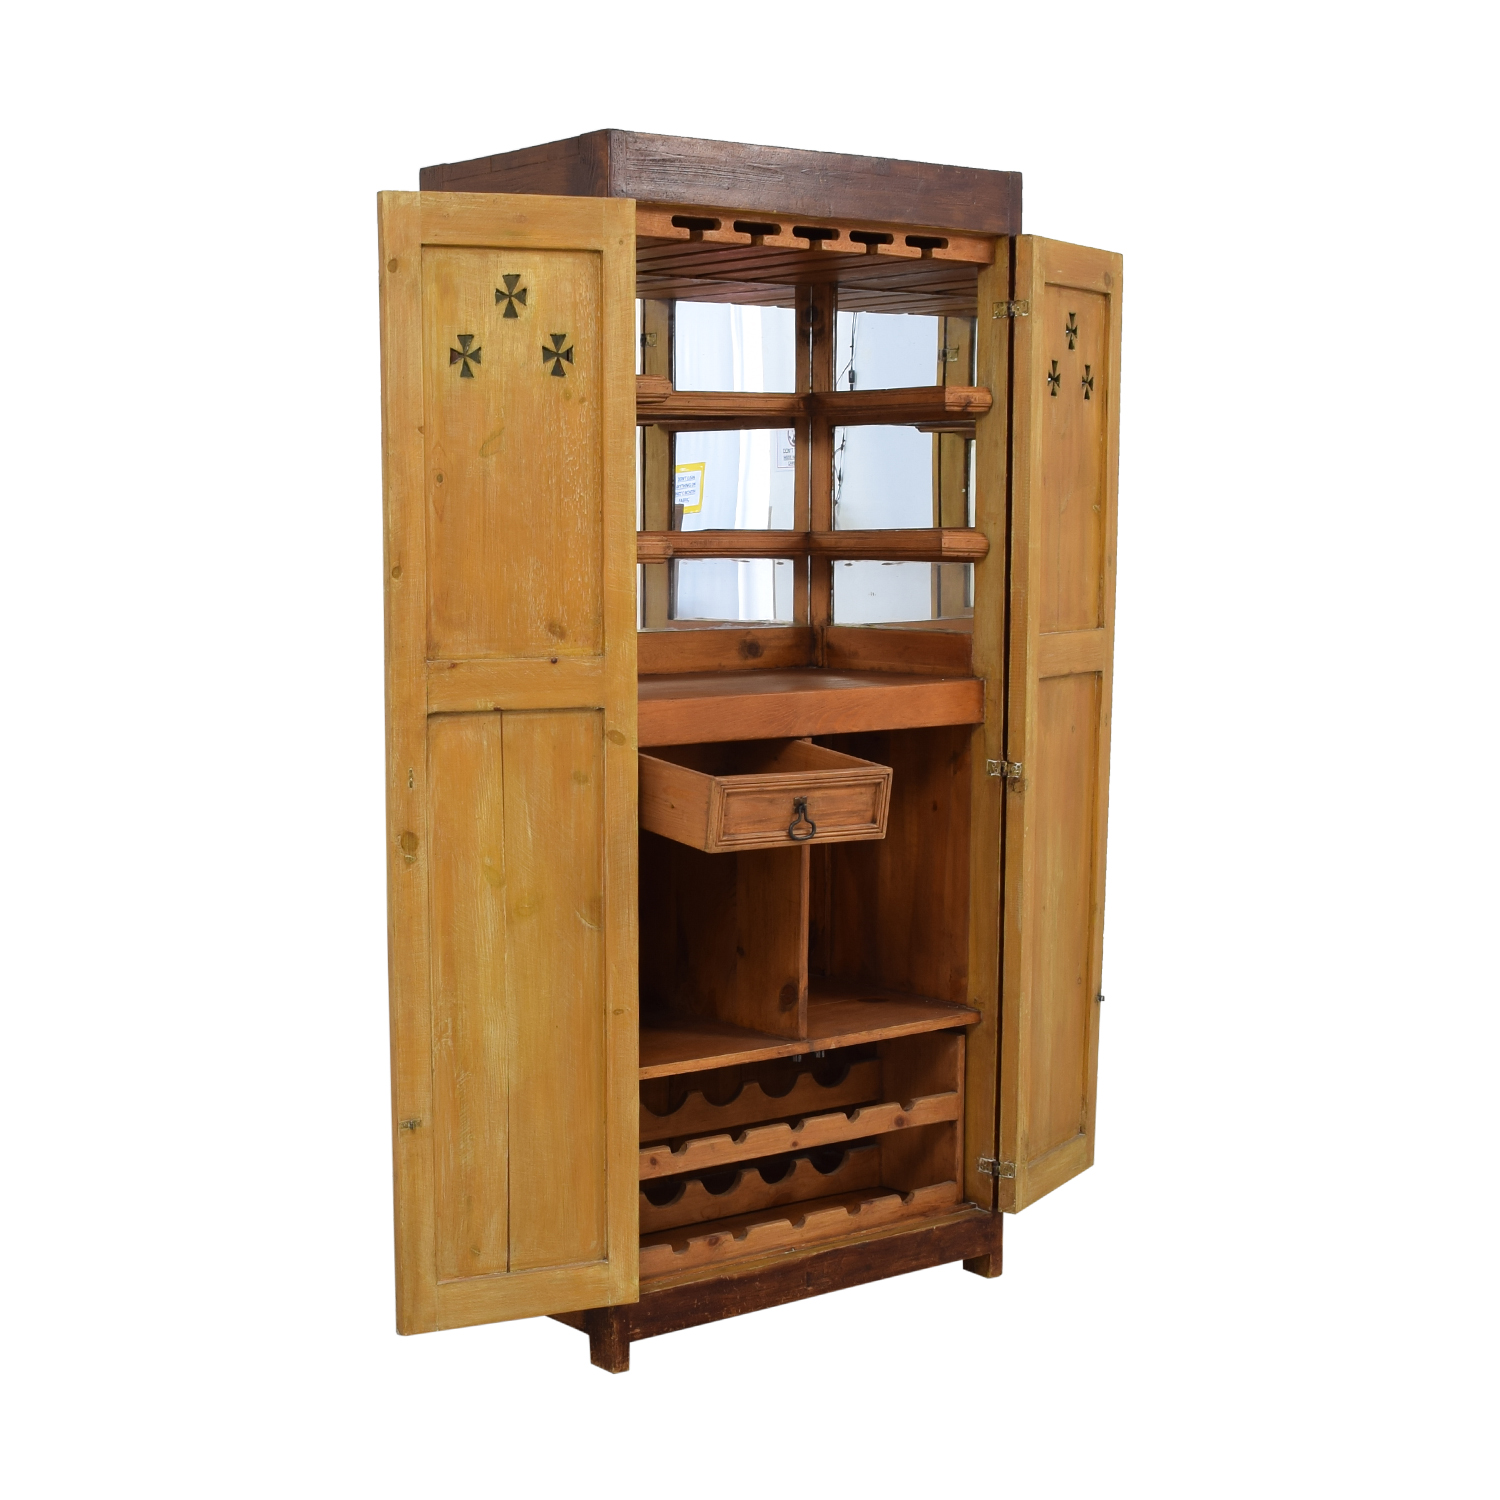 Distressed Wood Country Bar Cabinet Armoire with Interior Mirrors second hand